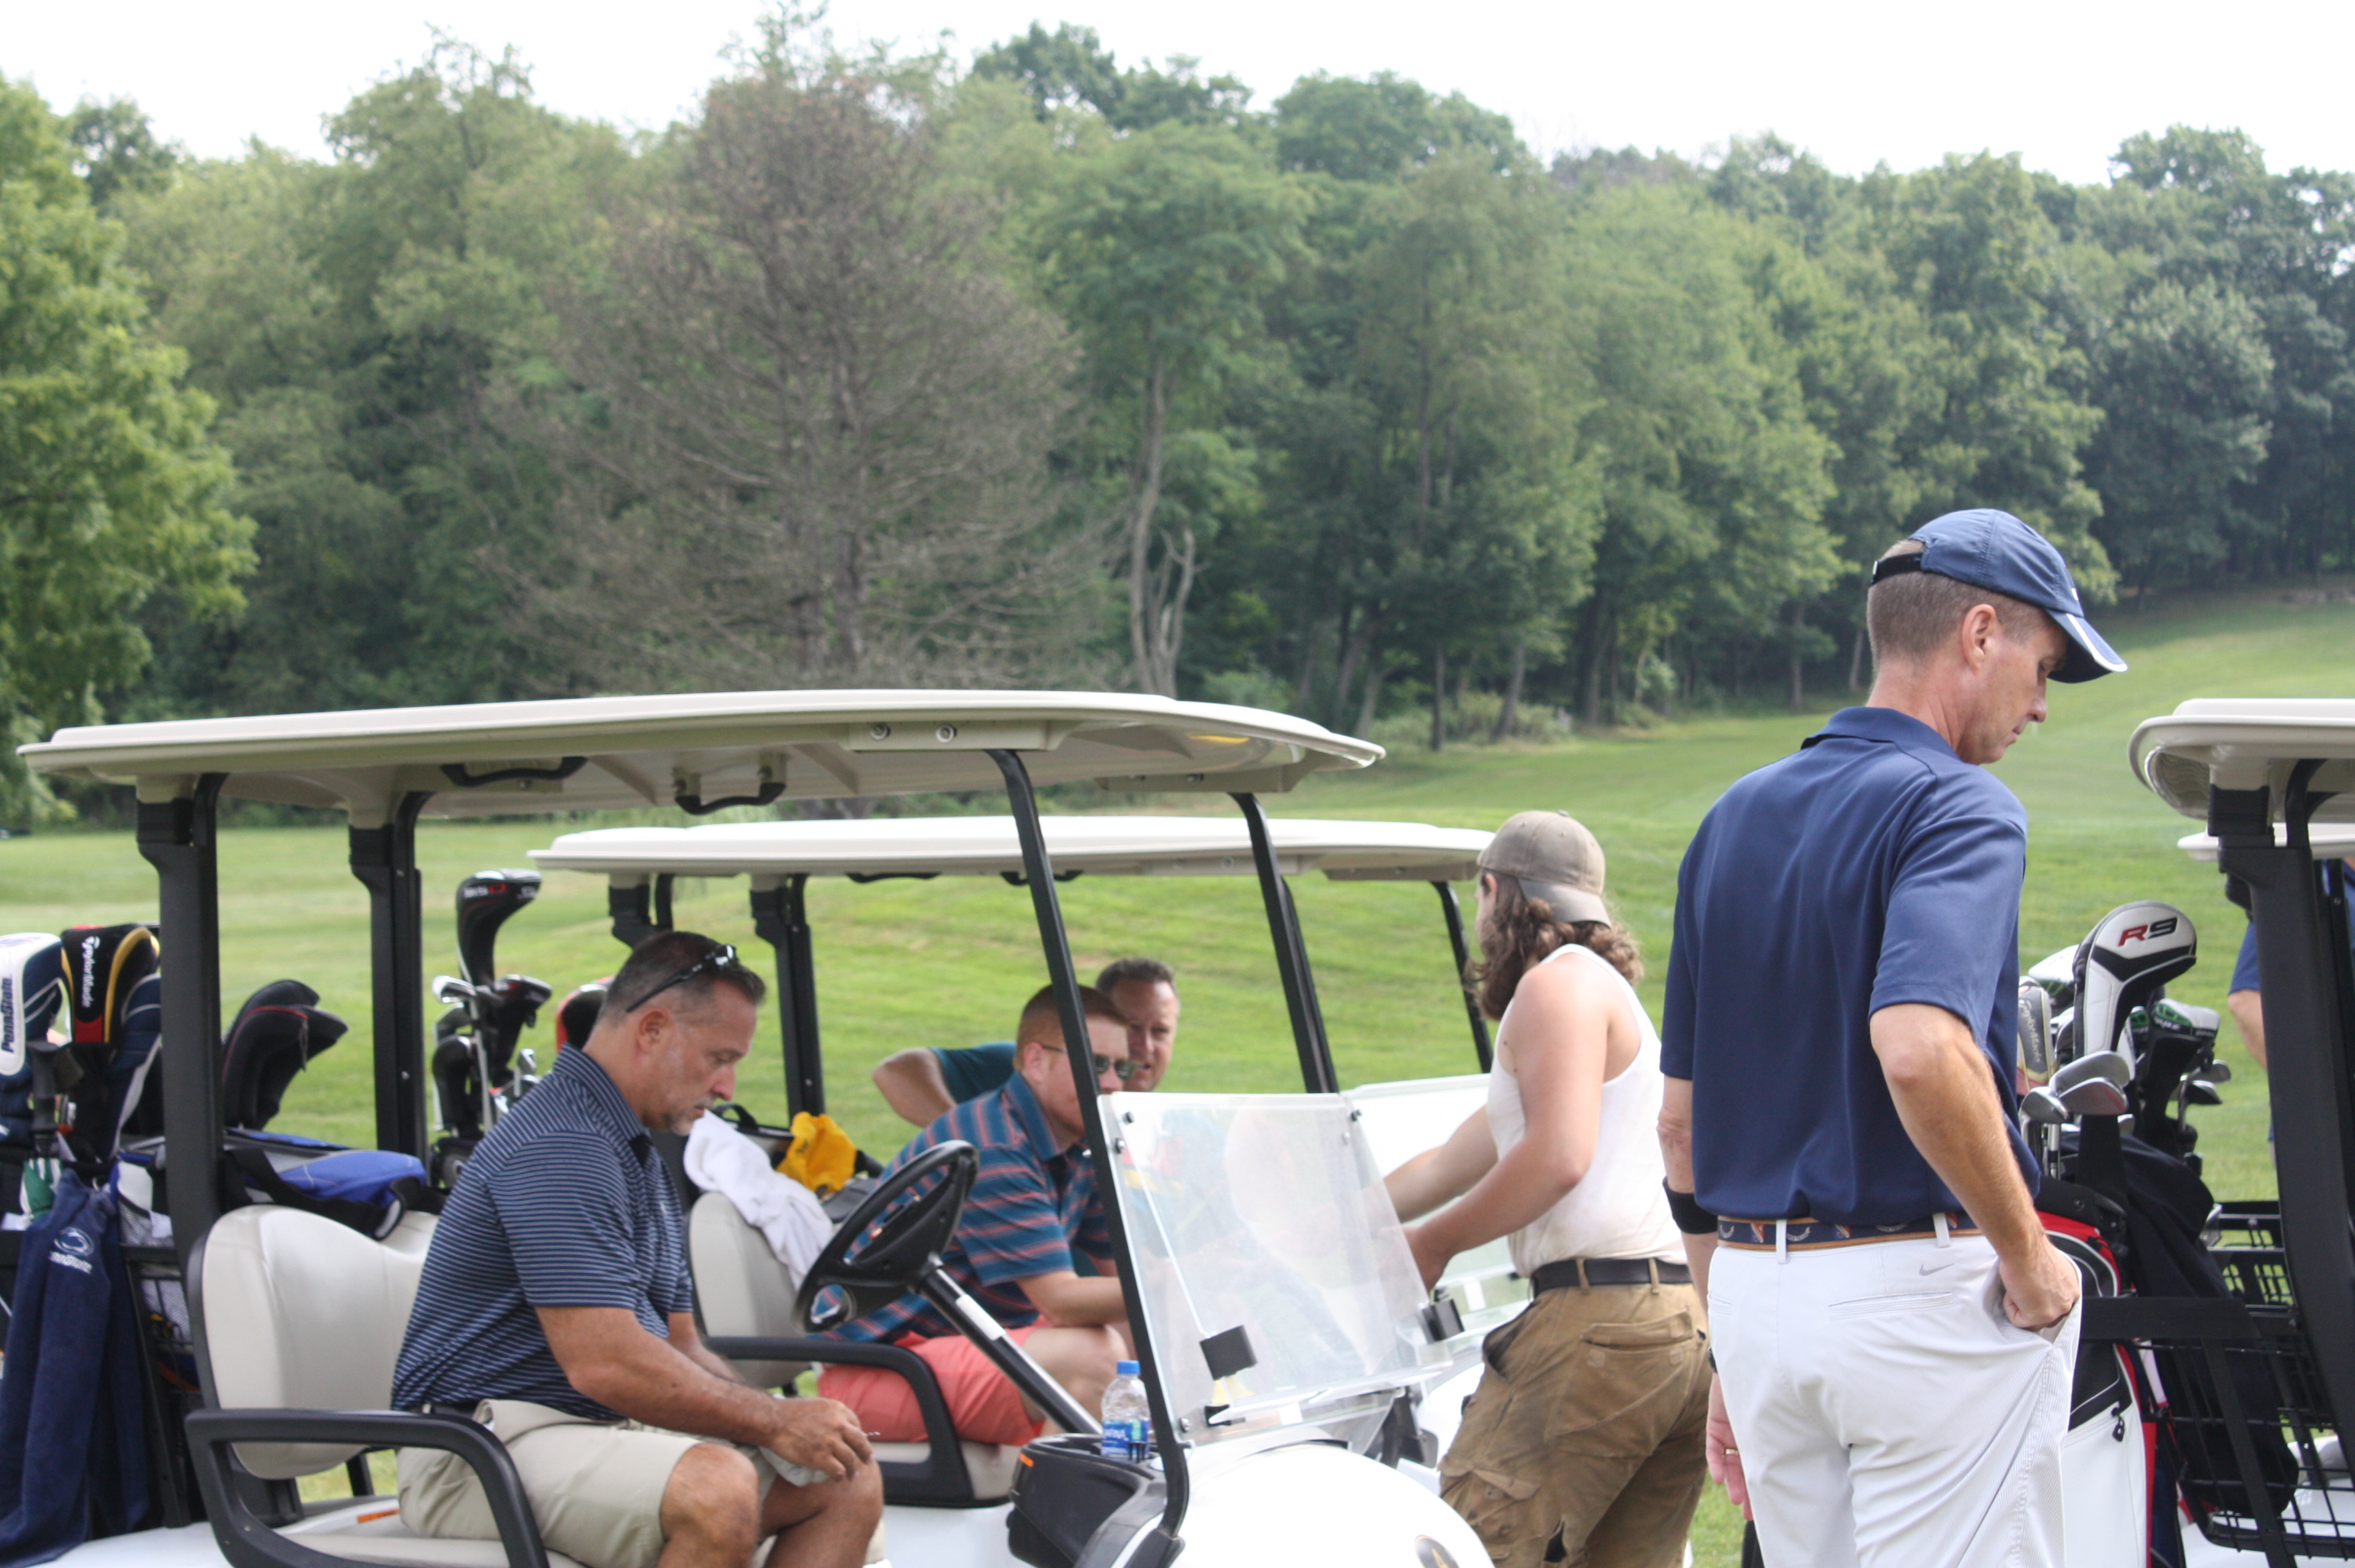 2019 Mars Planet Foundation Golf Outing gallery image #14